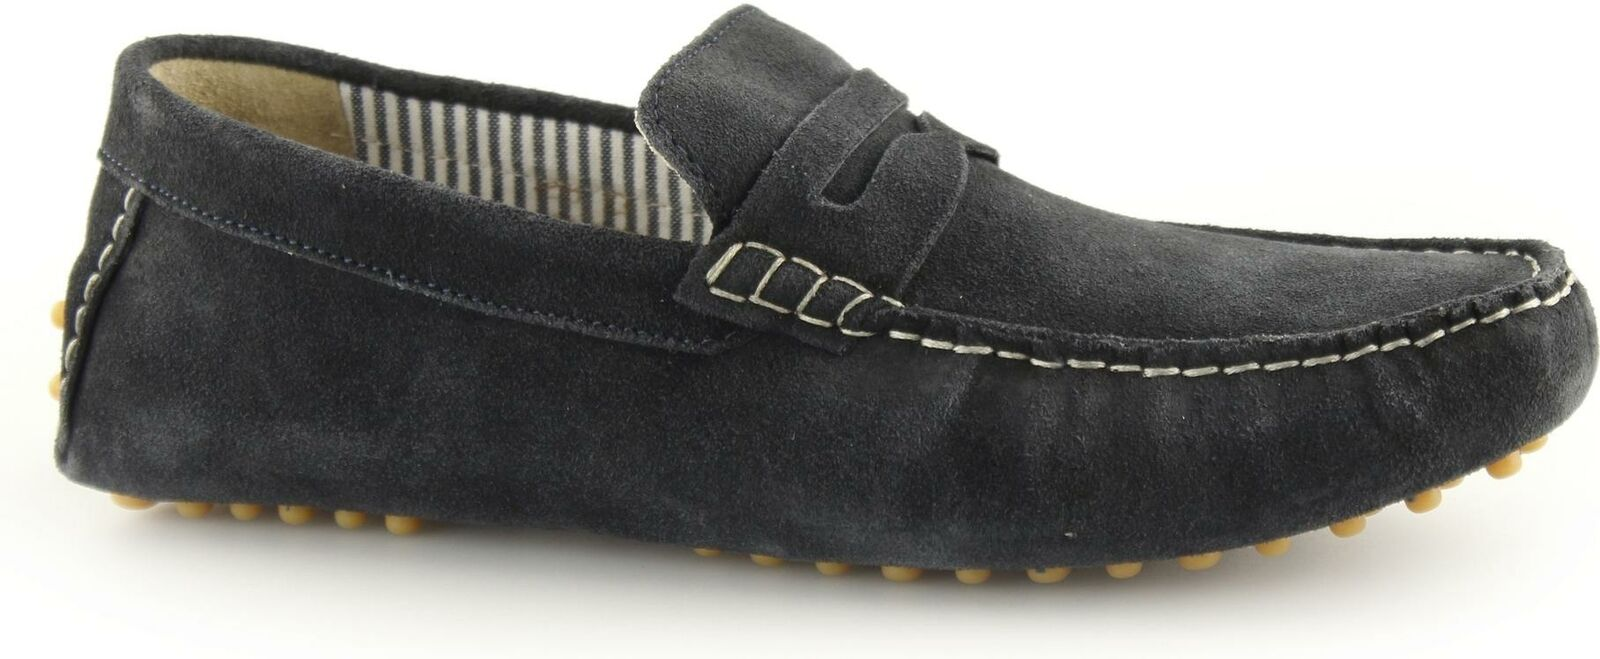 Ikon JENSON herren Suede Leather Slip On Moccasin Casual Driving Loafers Navy Blau